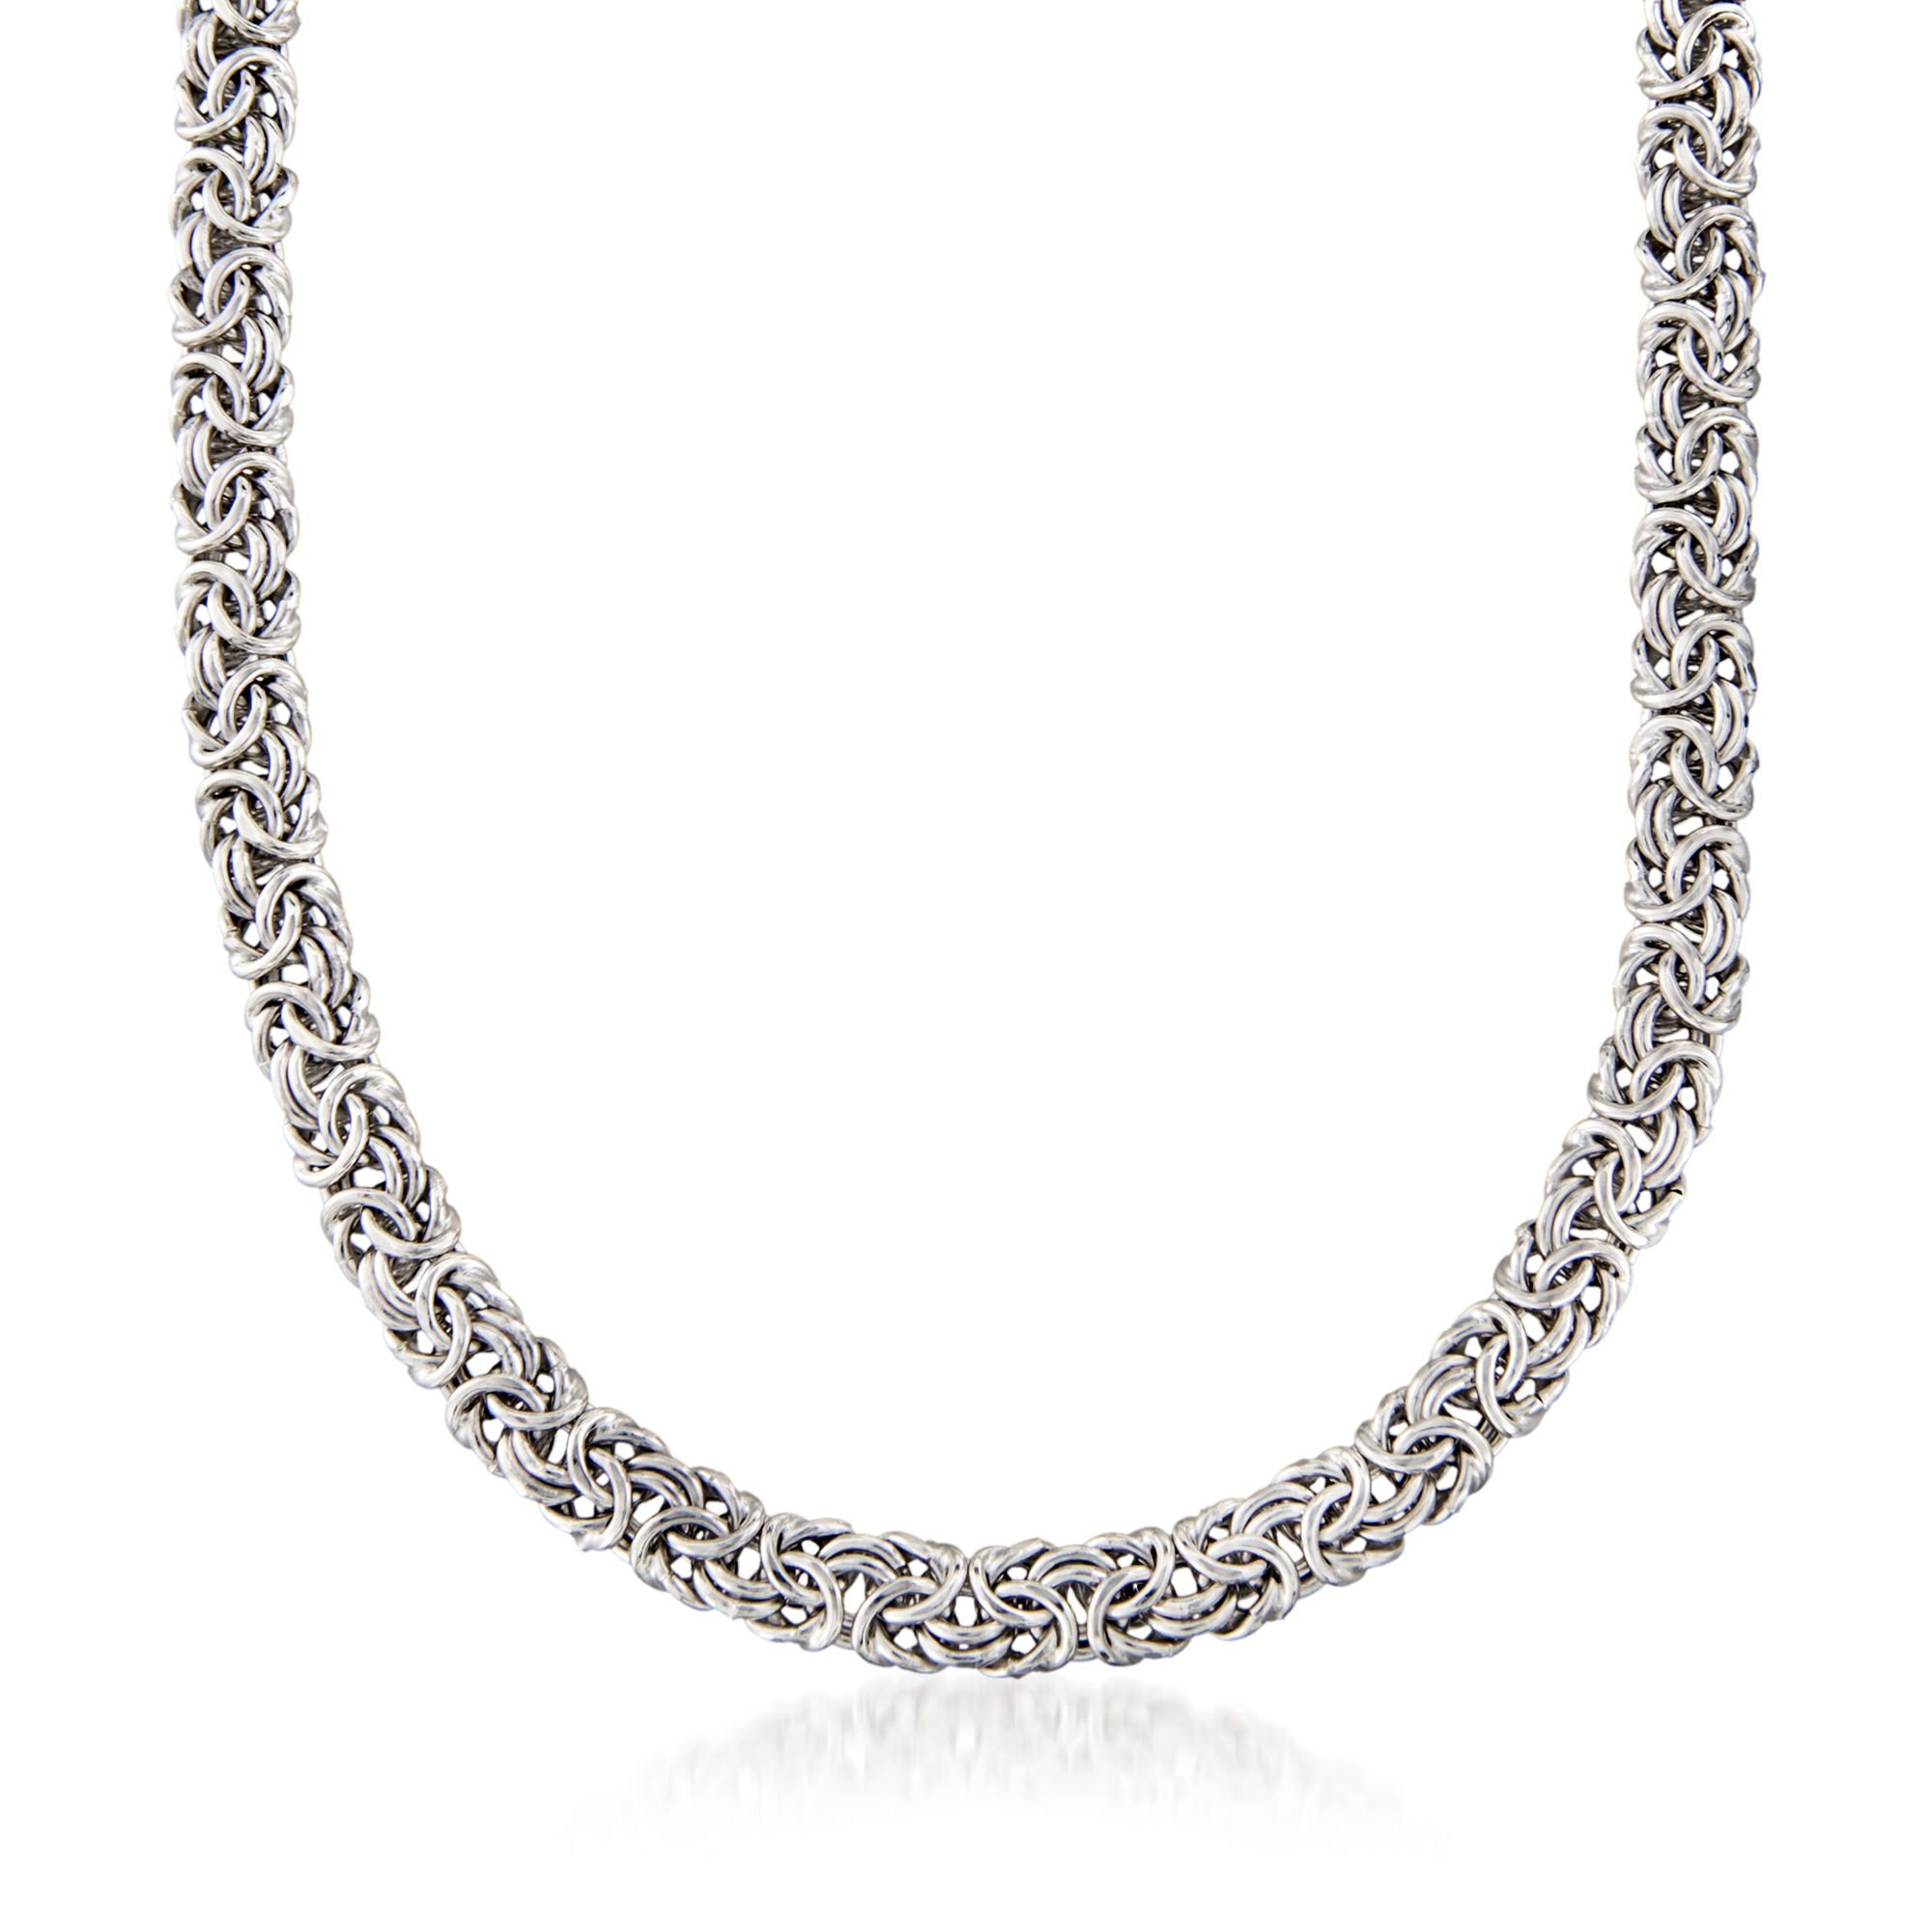 Ross-Simons Sterling Silver Classic Byzantine Necklace, Made in Italy, Includes Presentation Box